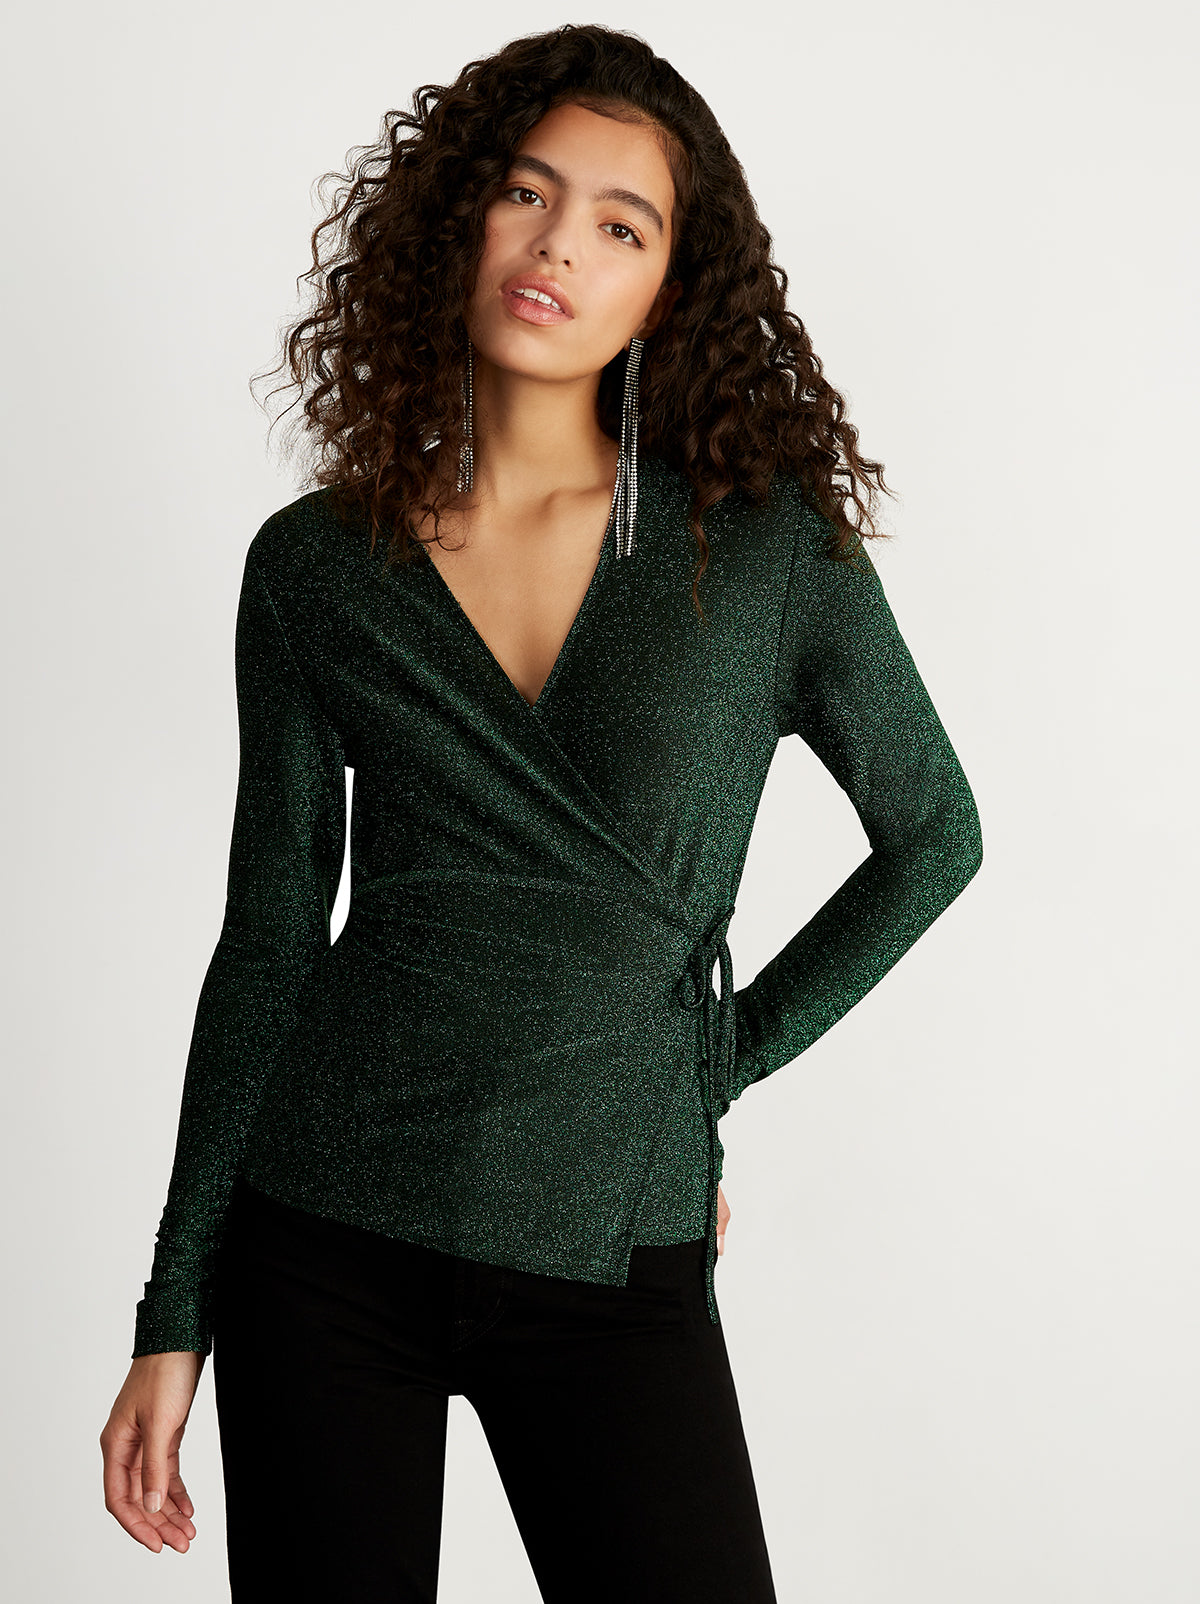 Bernice Green Wrap Top by KITRI Studio